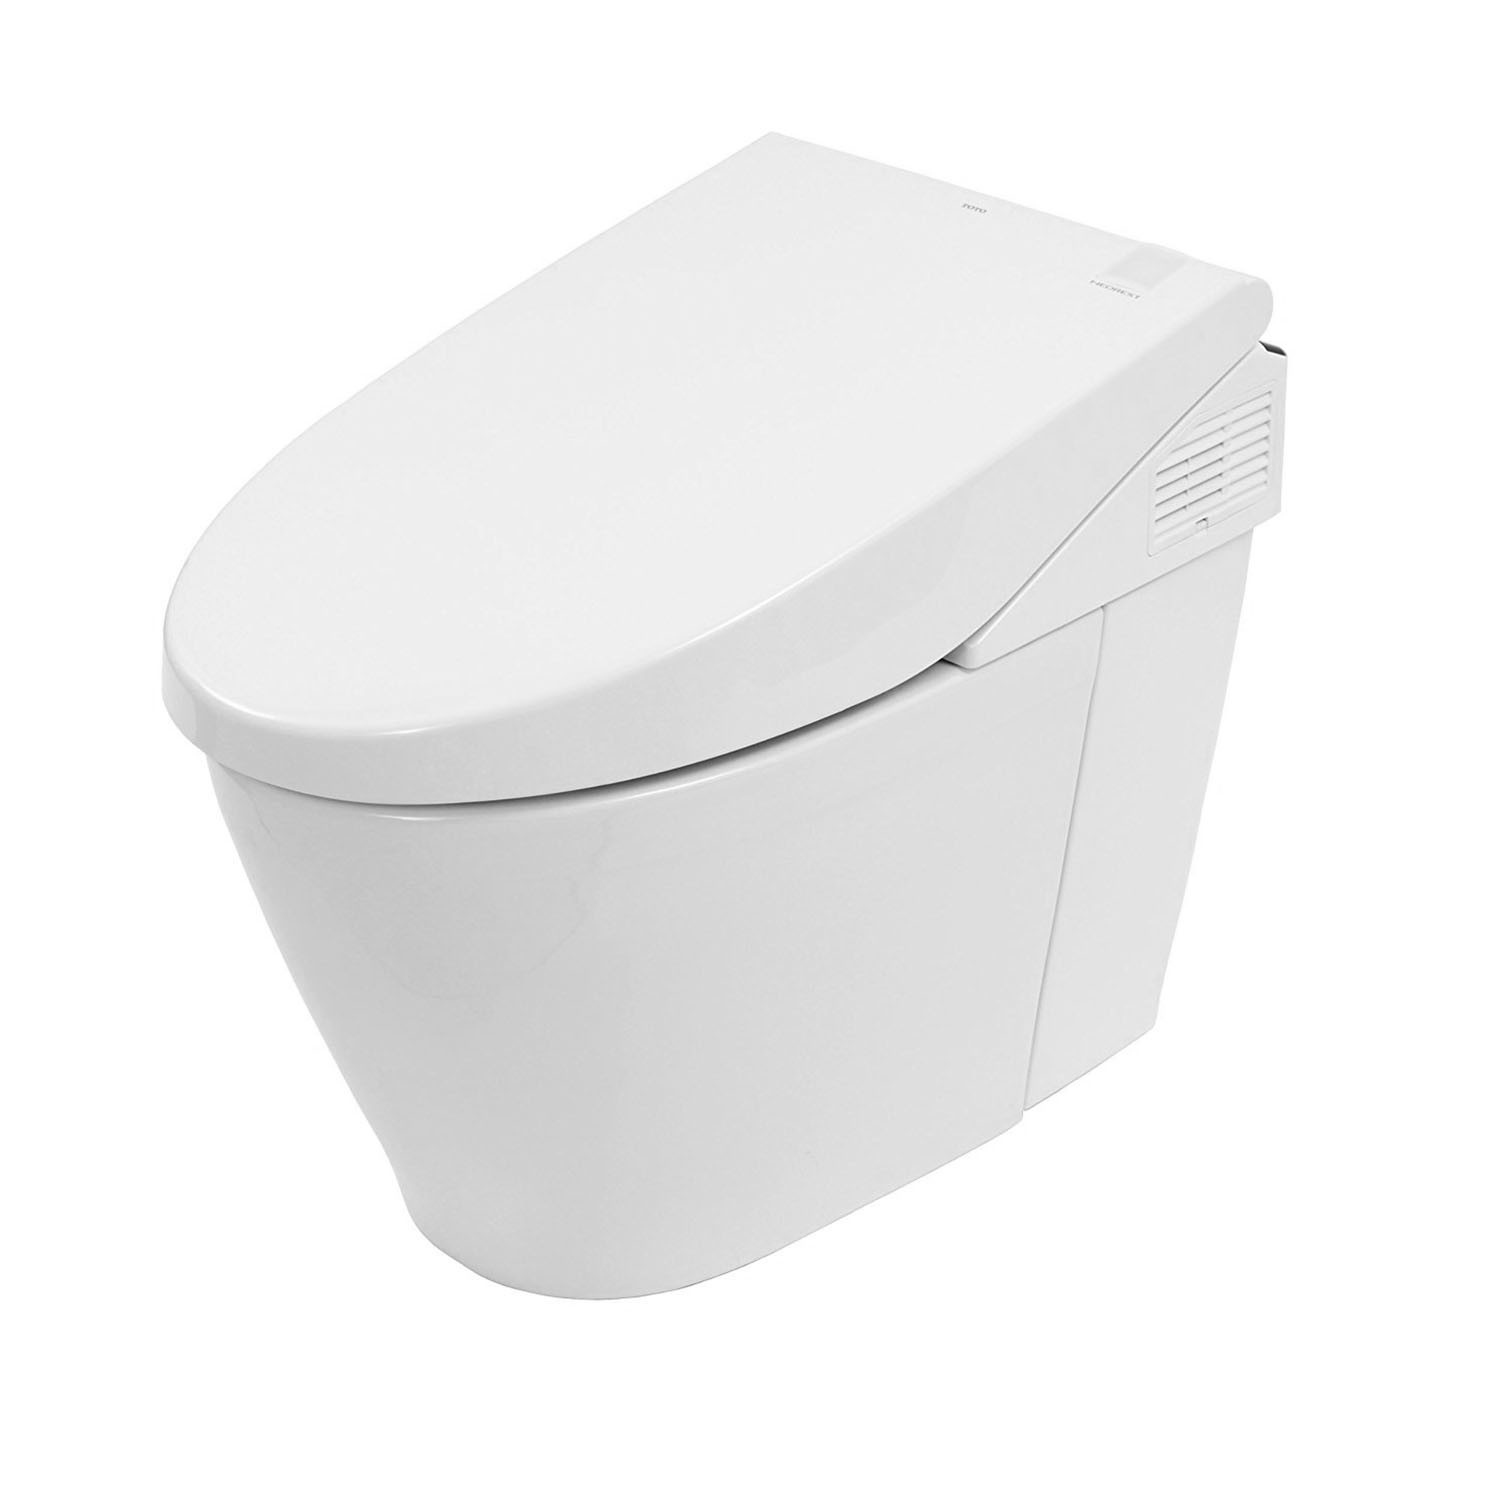 TOTO Neorest 550H Dual Flush, eWater+ Smart Toilet with Bidet ...